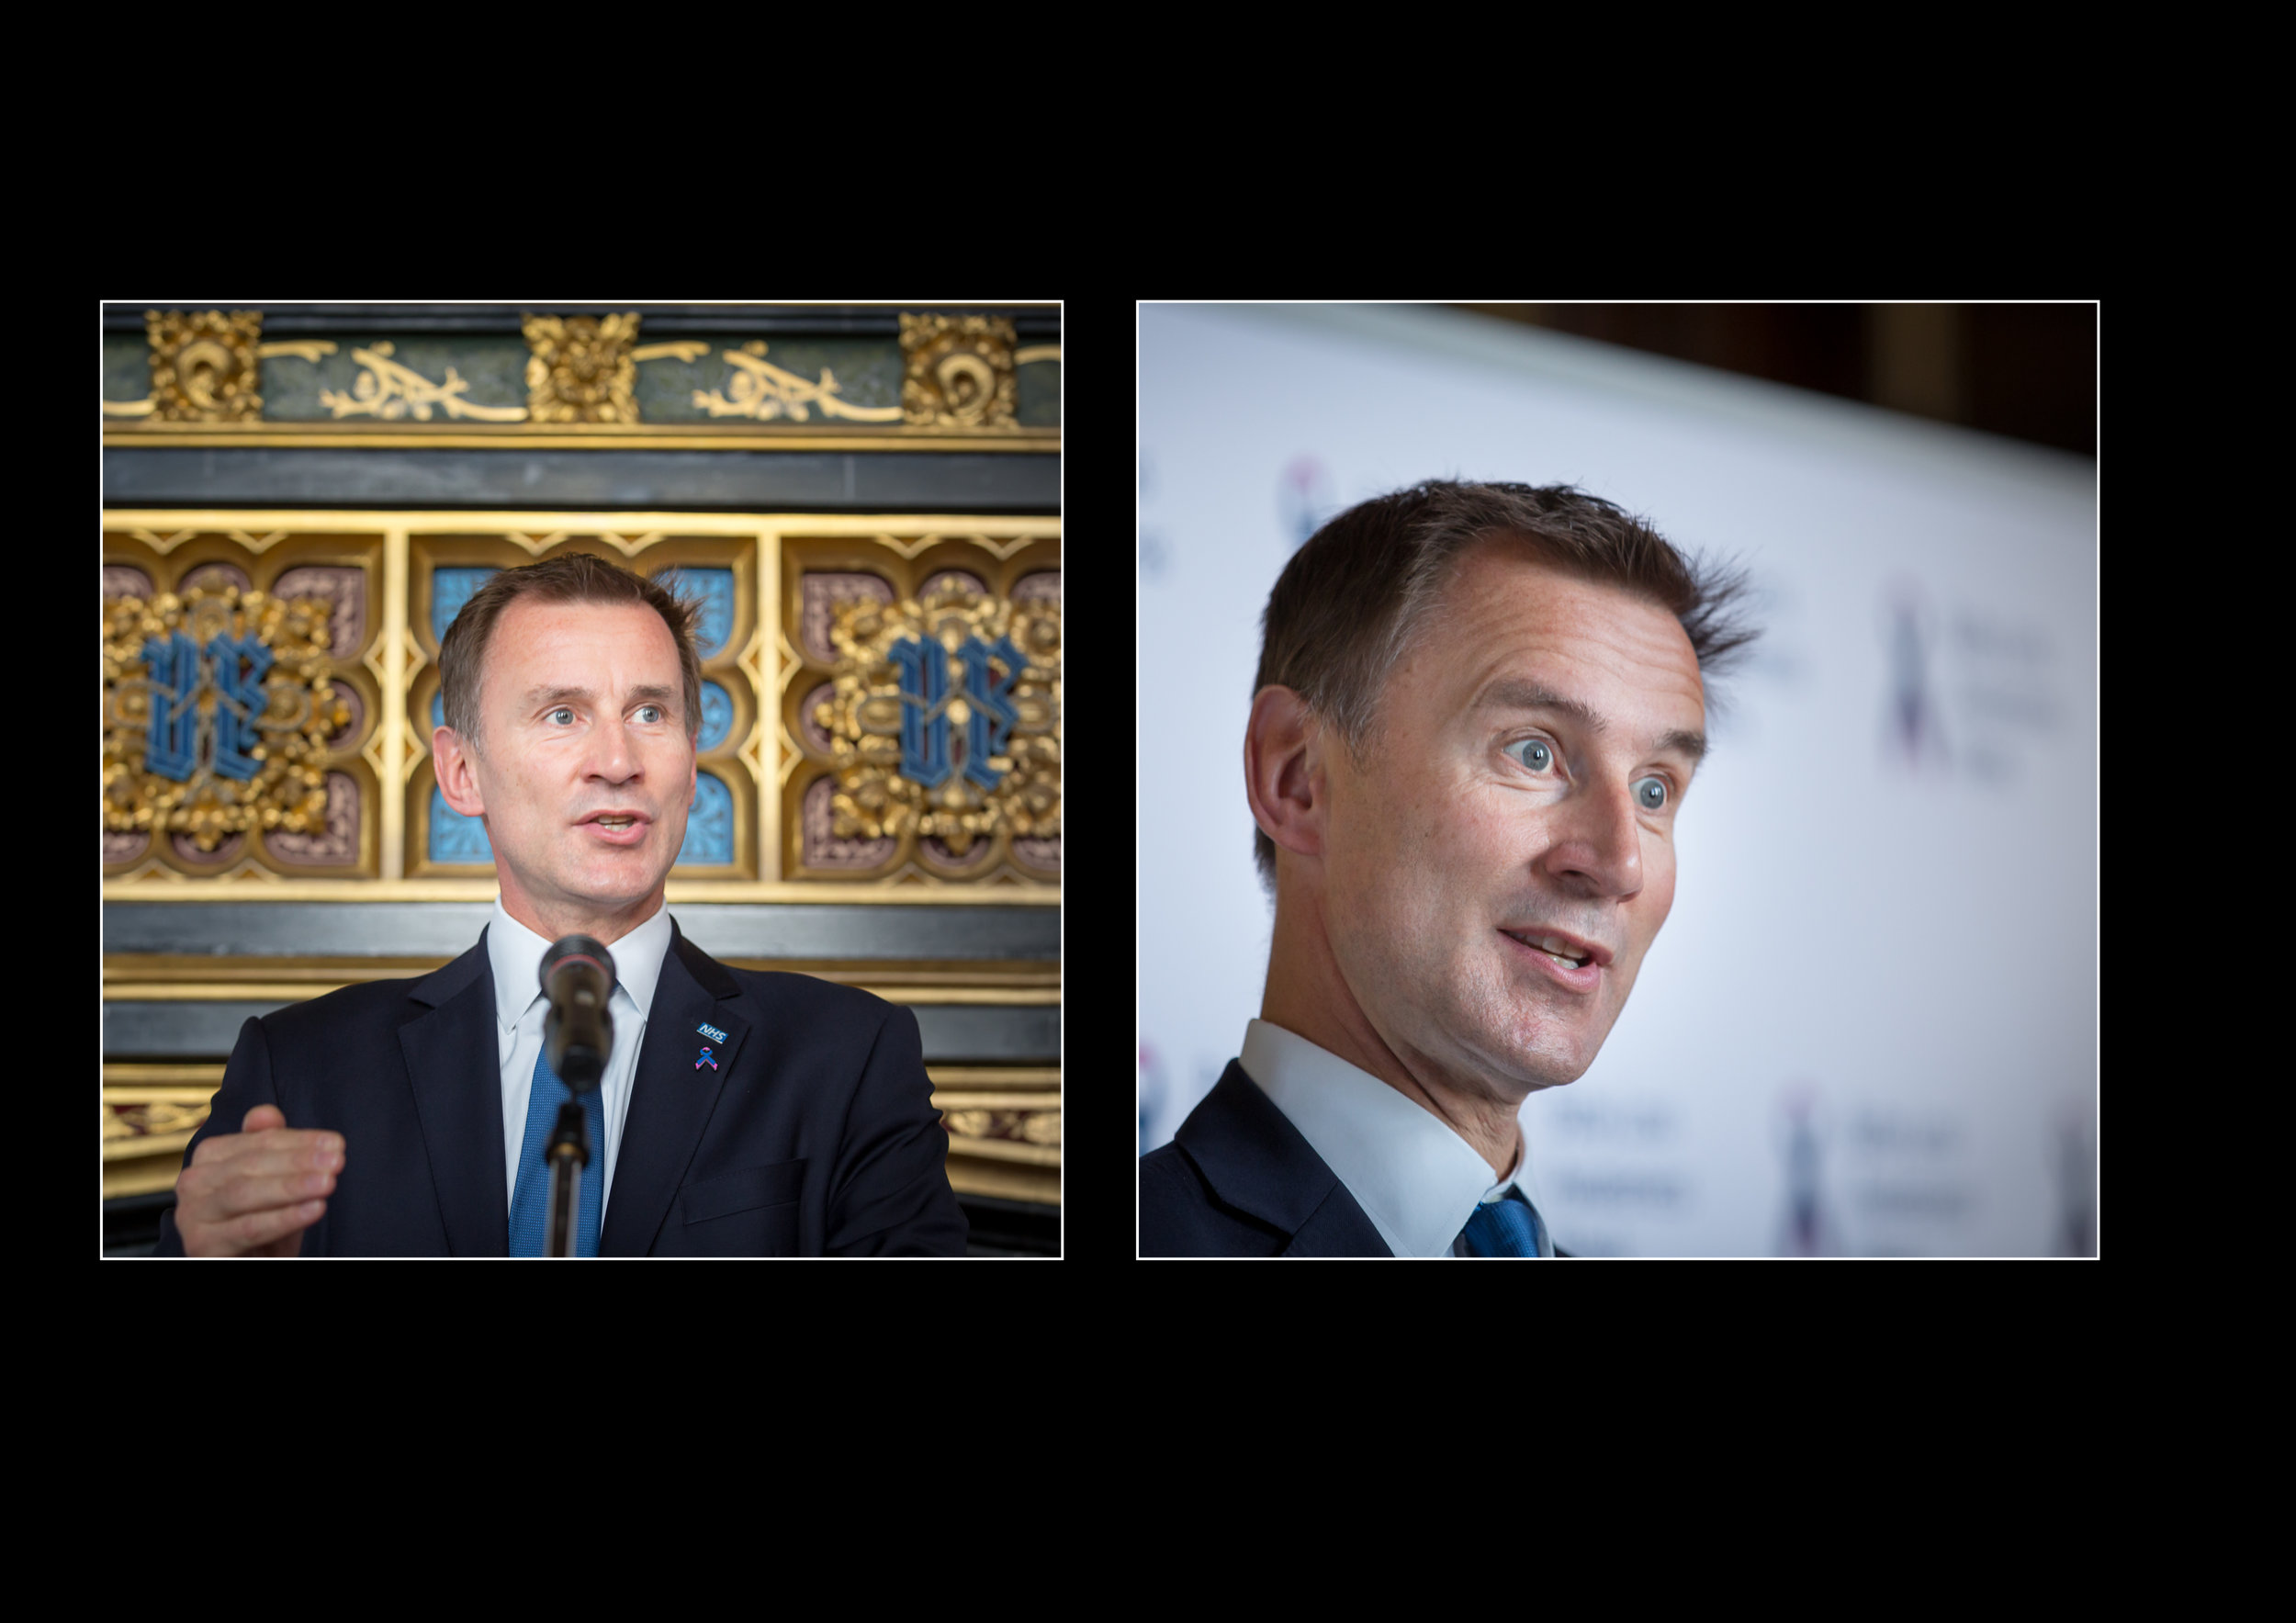 jeremy hunt double.jpg